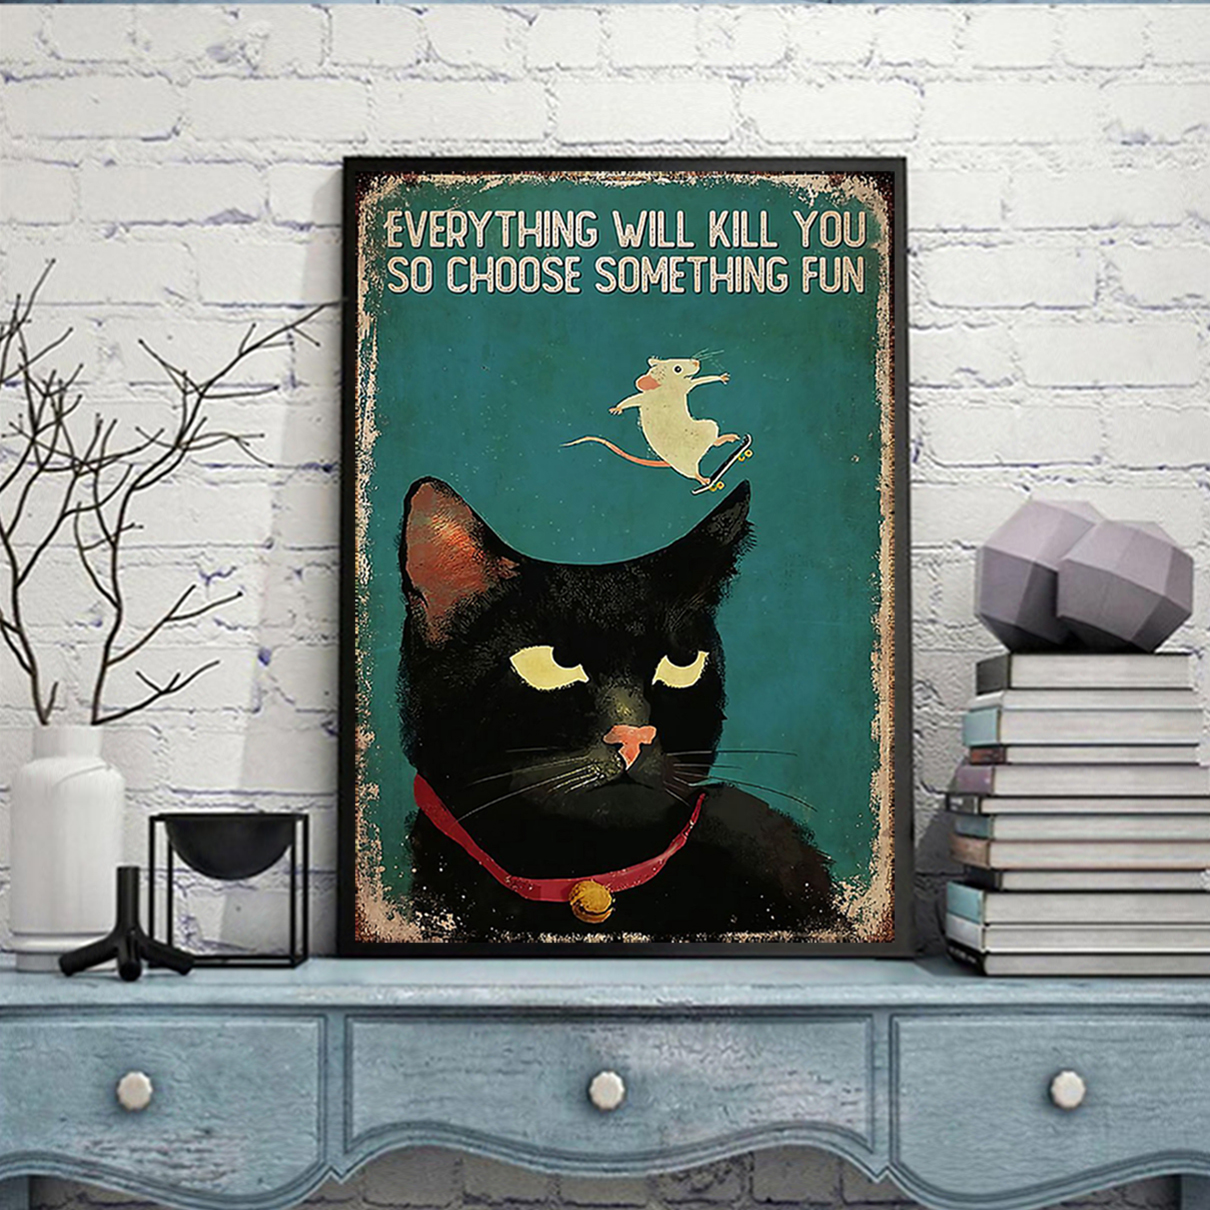 Cat skateboard mouse everything will kill you so choose something fun poster A1